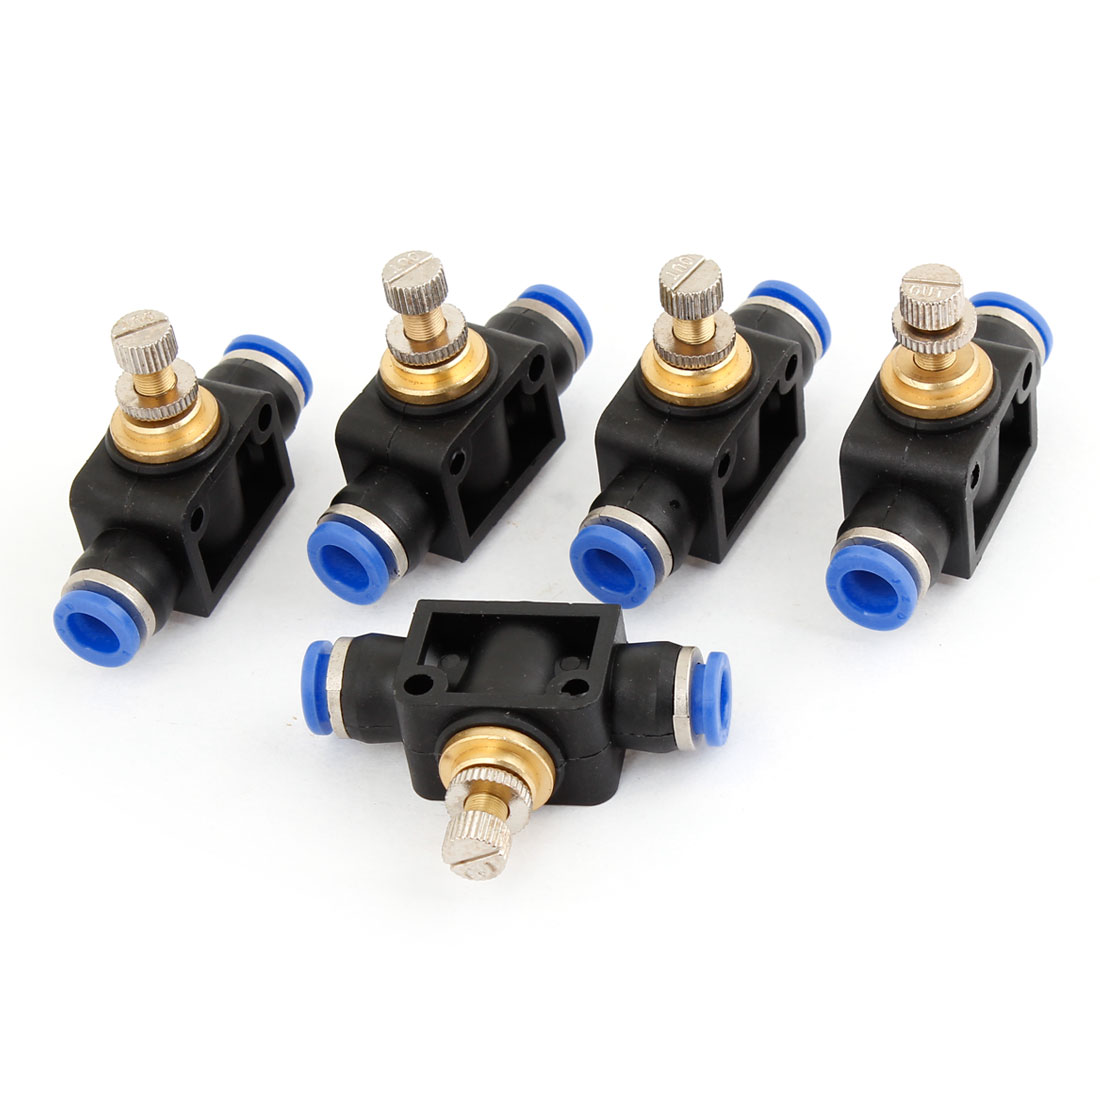 5 Pcs 8mm to 8mm Air Tube Speed Control Quick Coupler Coupling Pneumatic Fitting